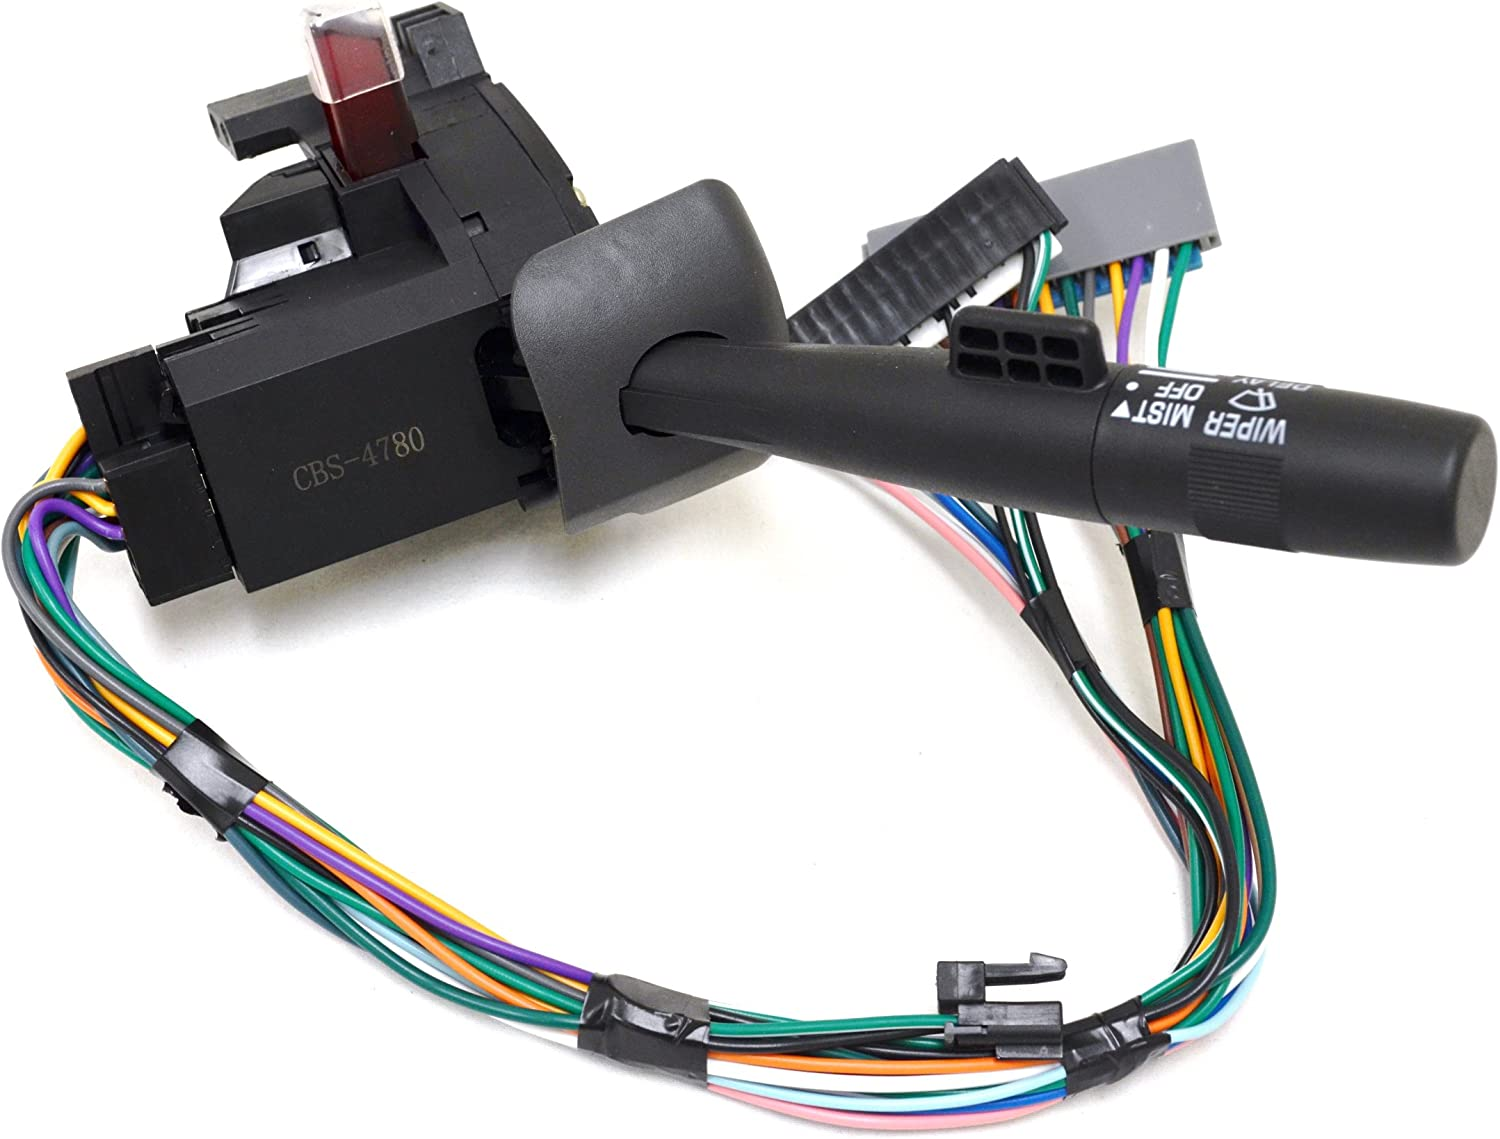 Combination Switch Windshield Wiper Hazard Warning PT Auto Warehouse CBS-4780 Dimmer without Cruise Control Turn Signal